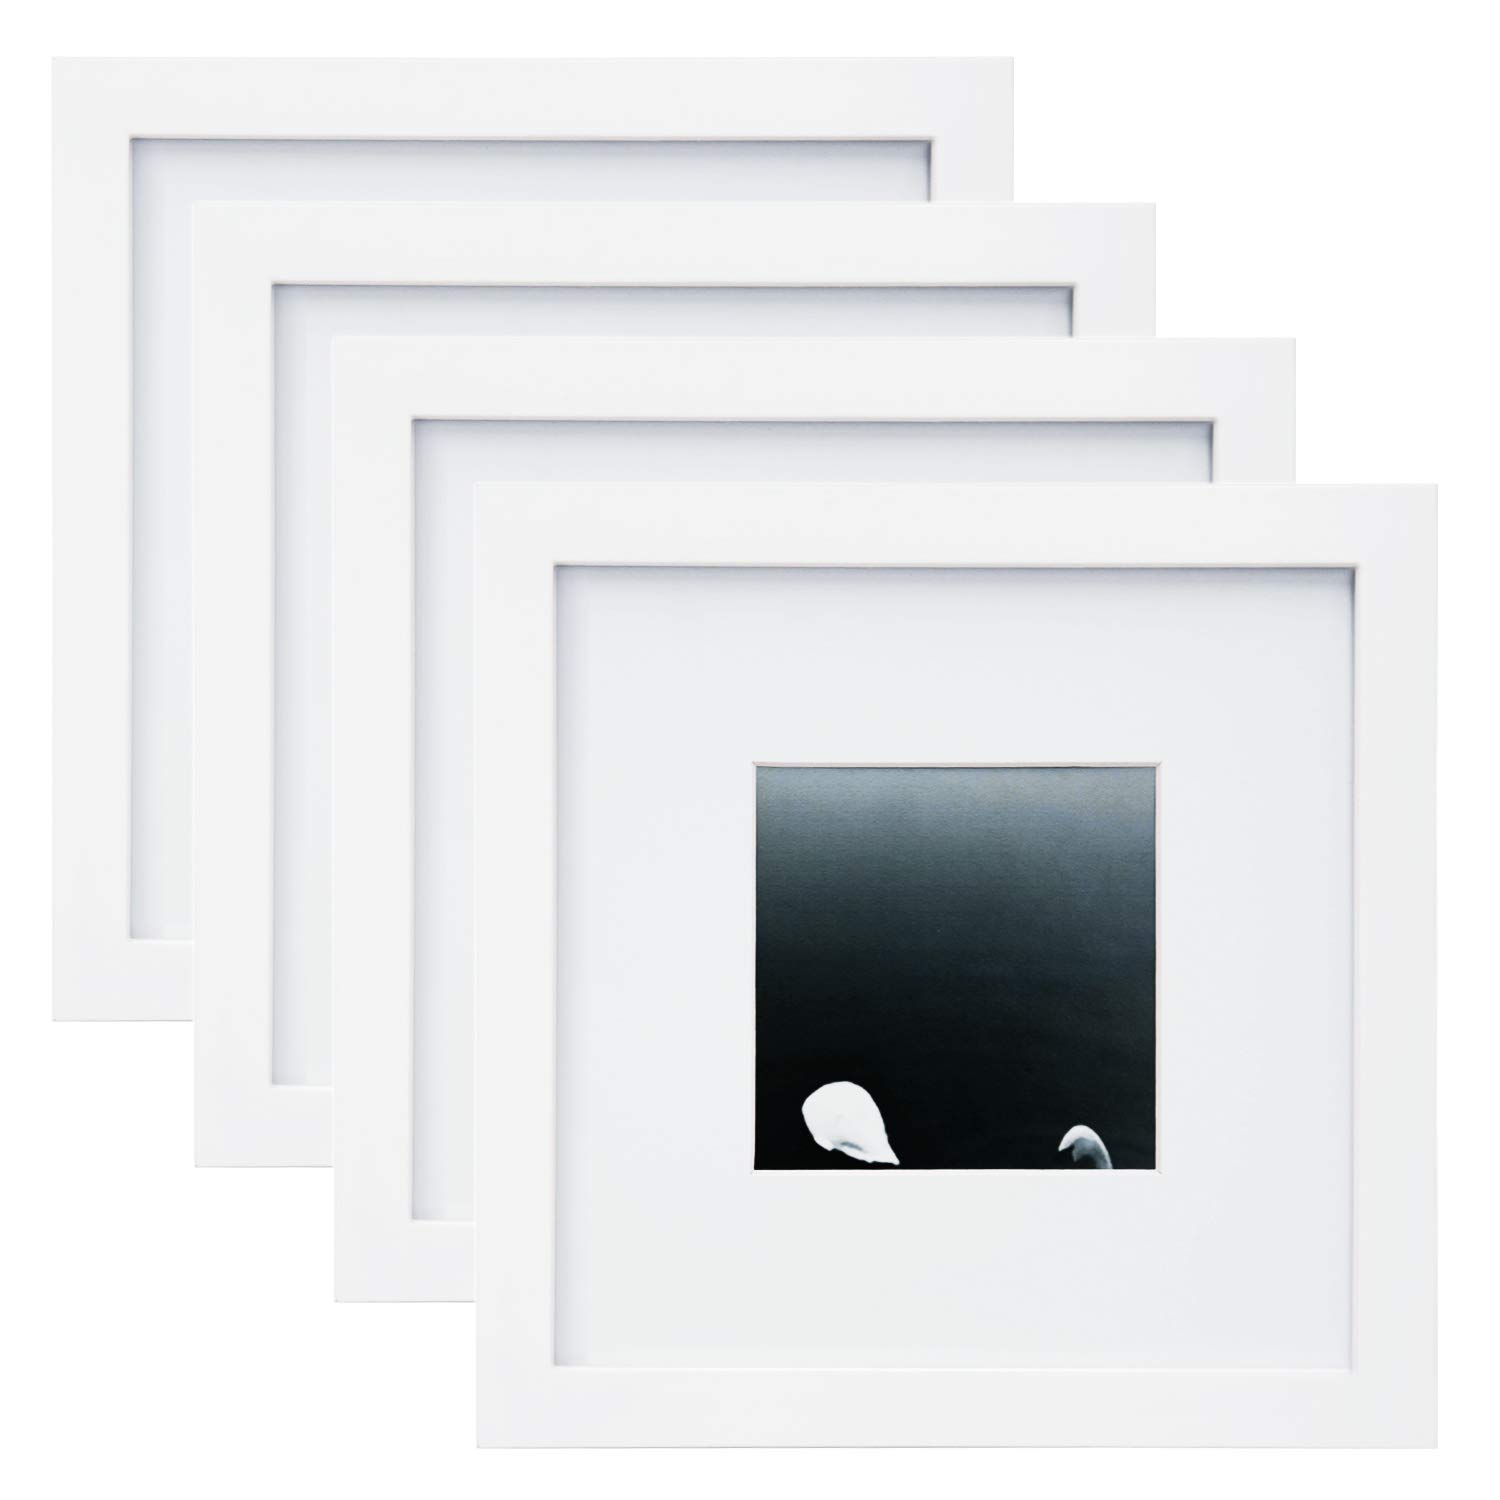 Egofine 8x8 Picture Frames 4 PCS for Pictures 4x4 with Mat Made of Solid Wood for Table Top Display and Wall Mounting Photo Frame White